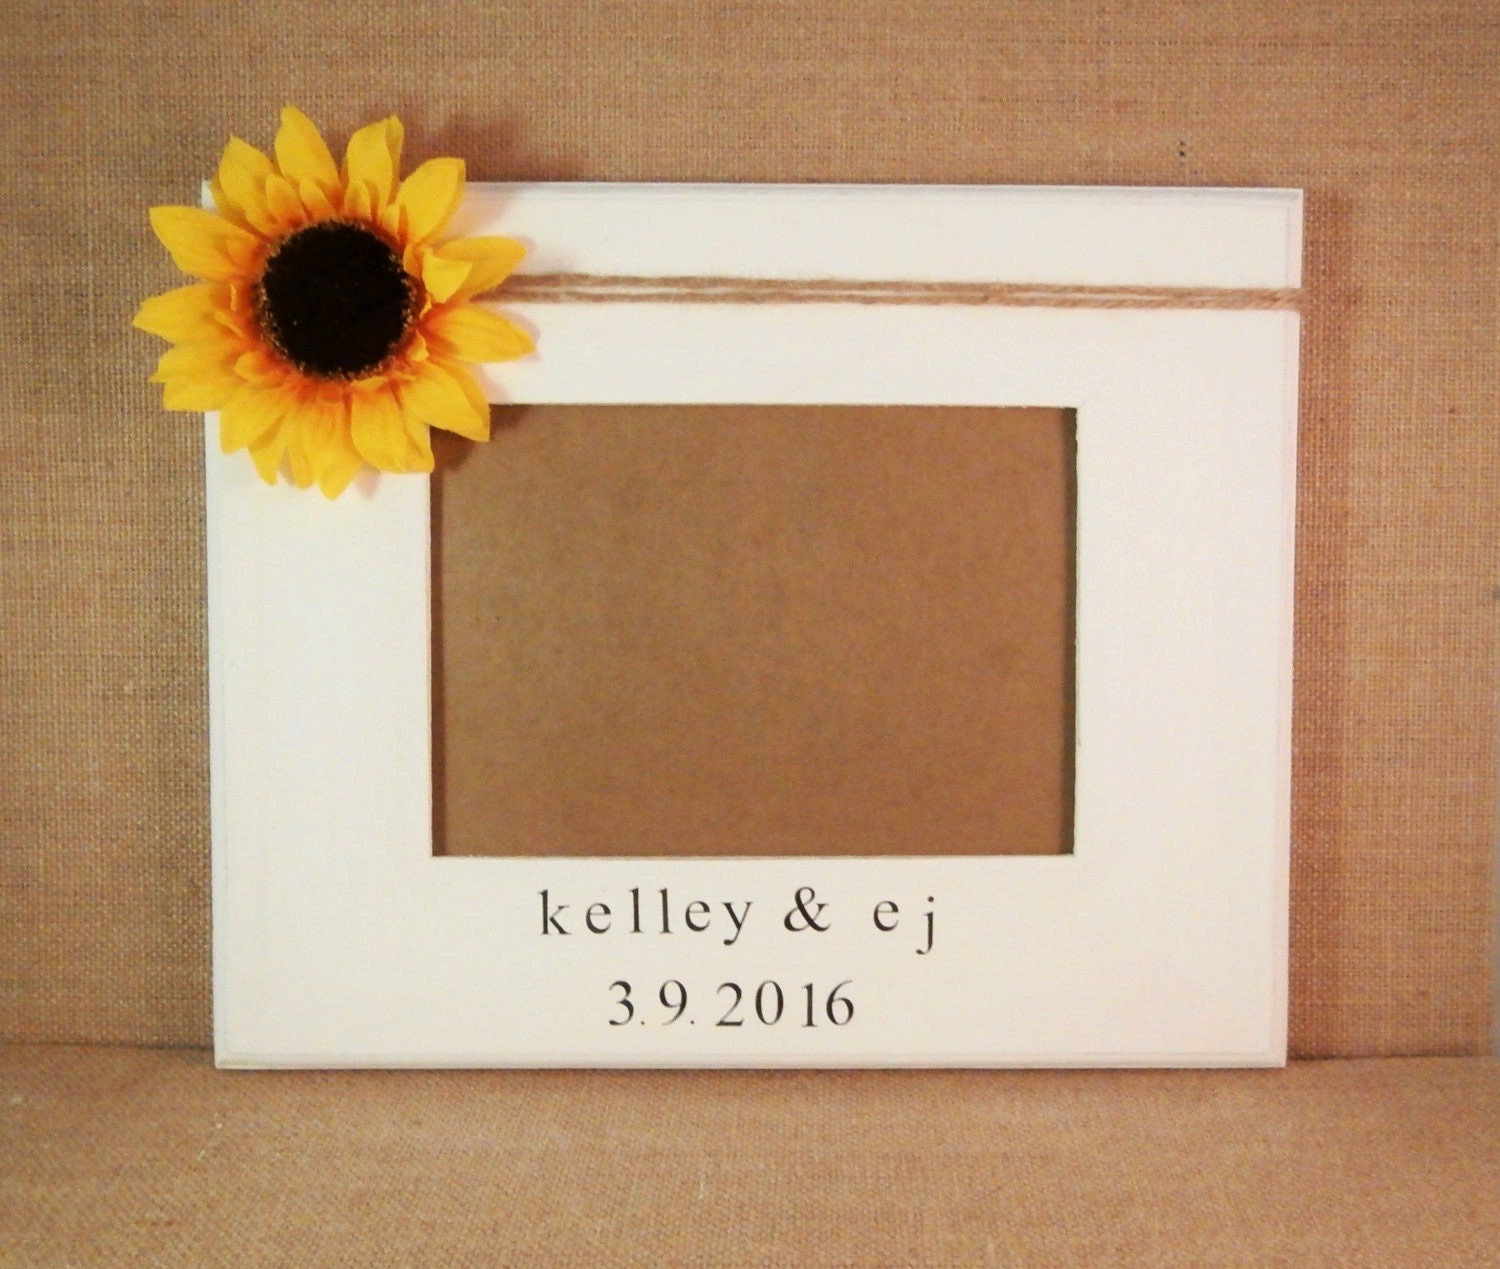 Sunflower gift, wedding gifts for couple gift ideas, personalized ...